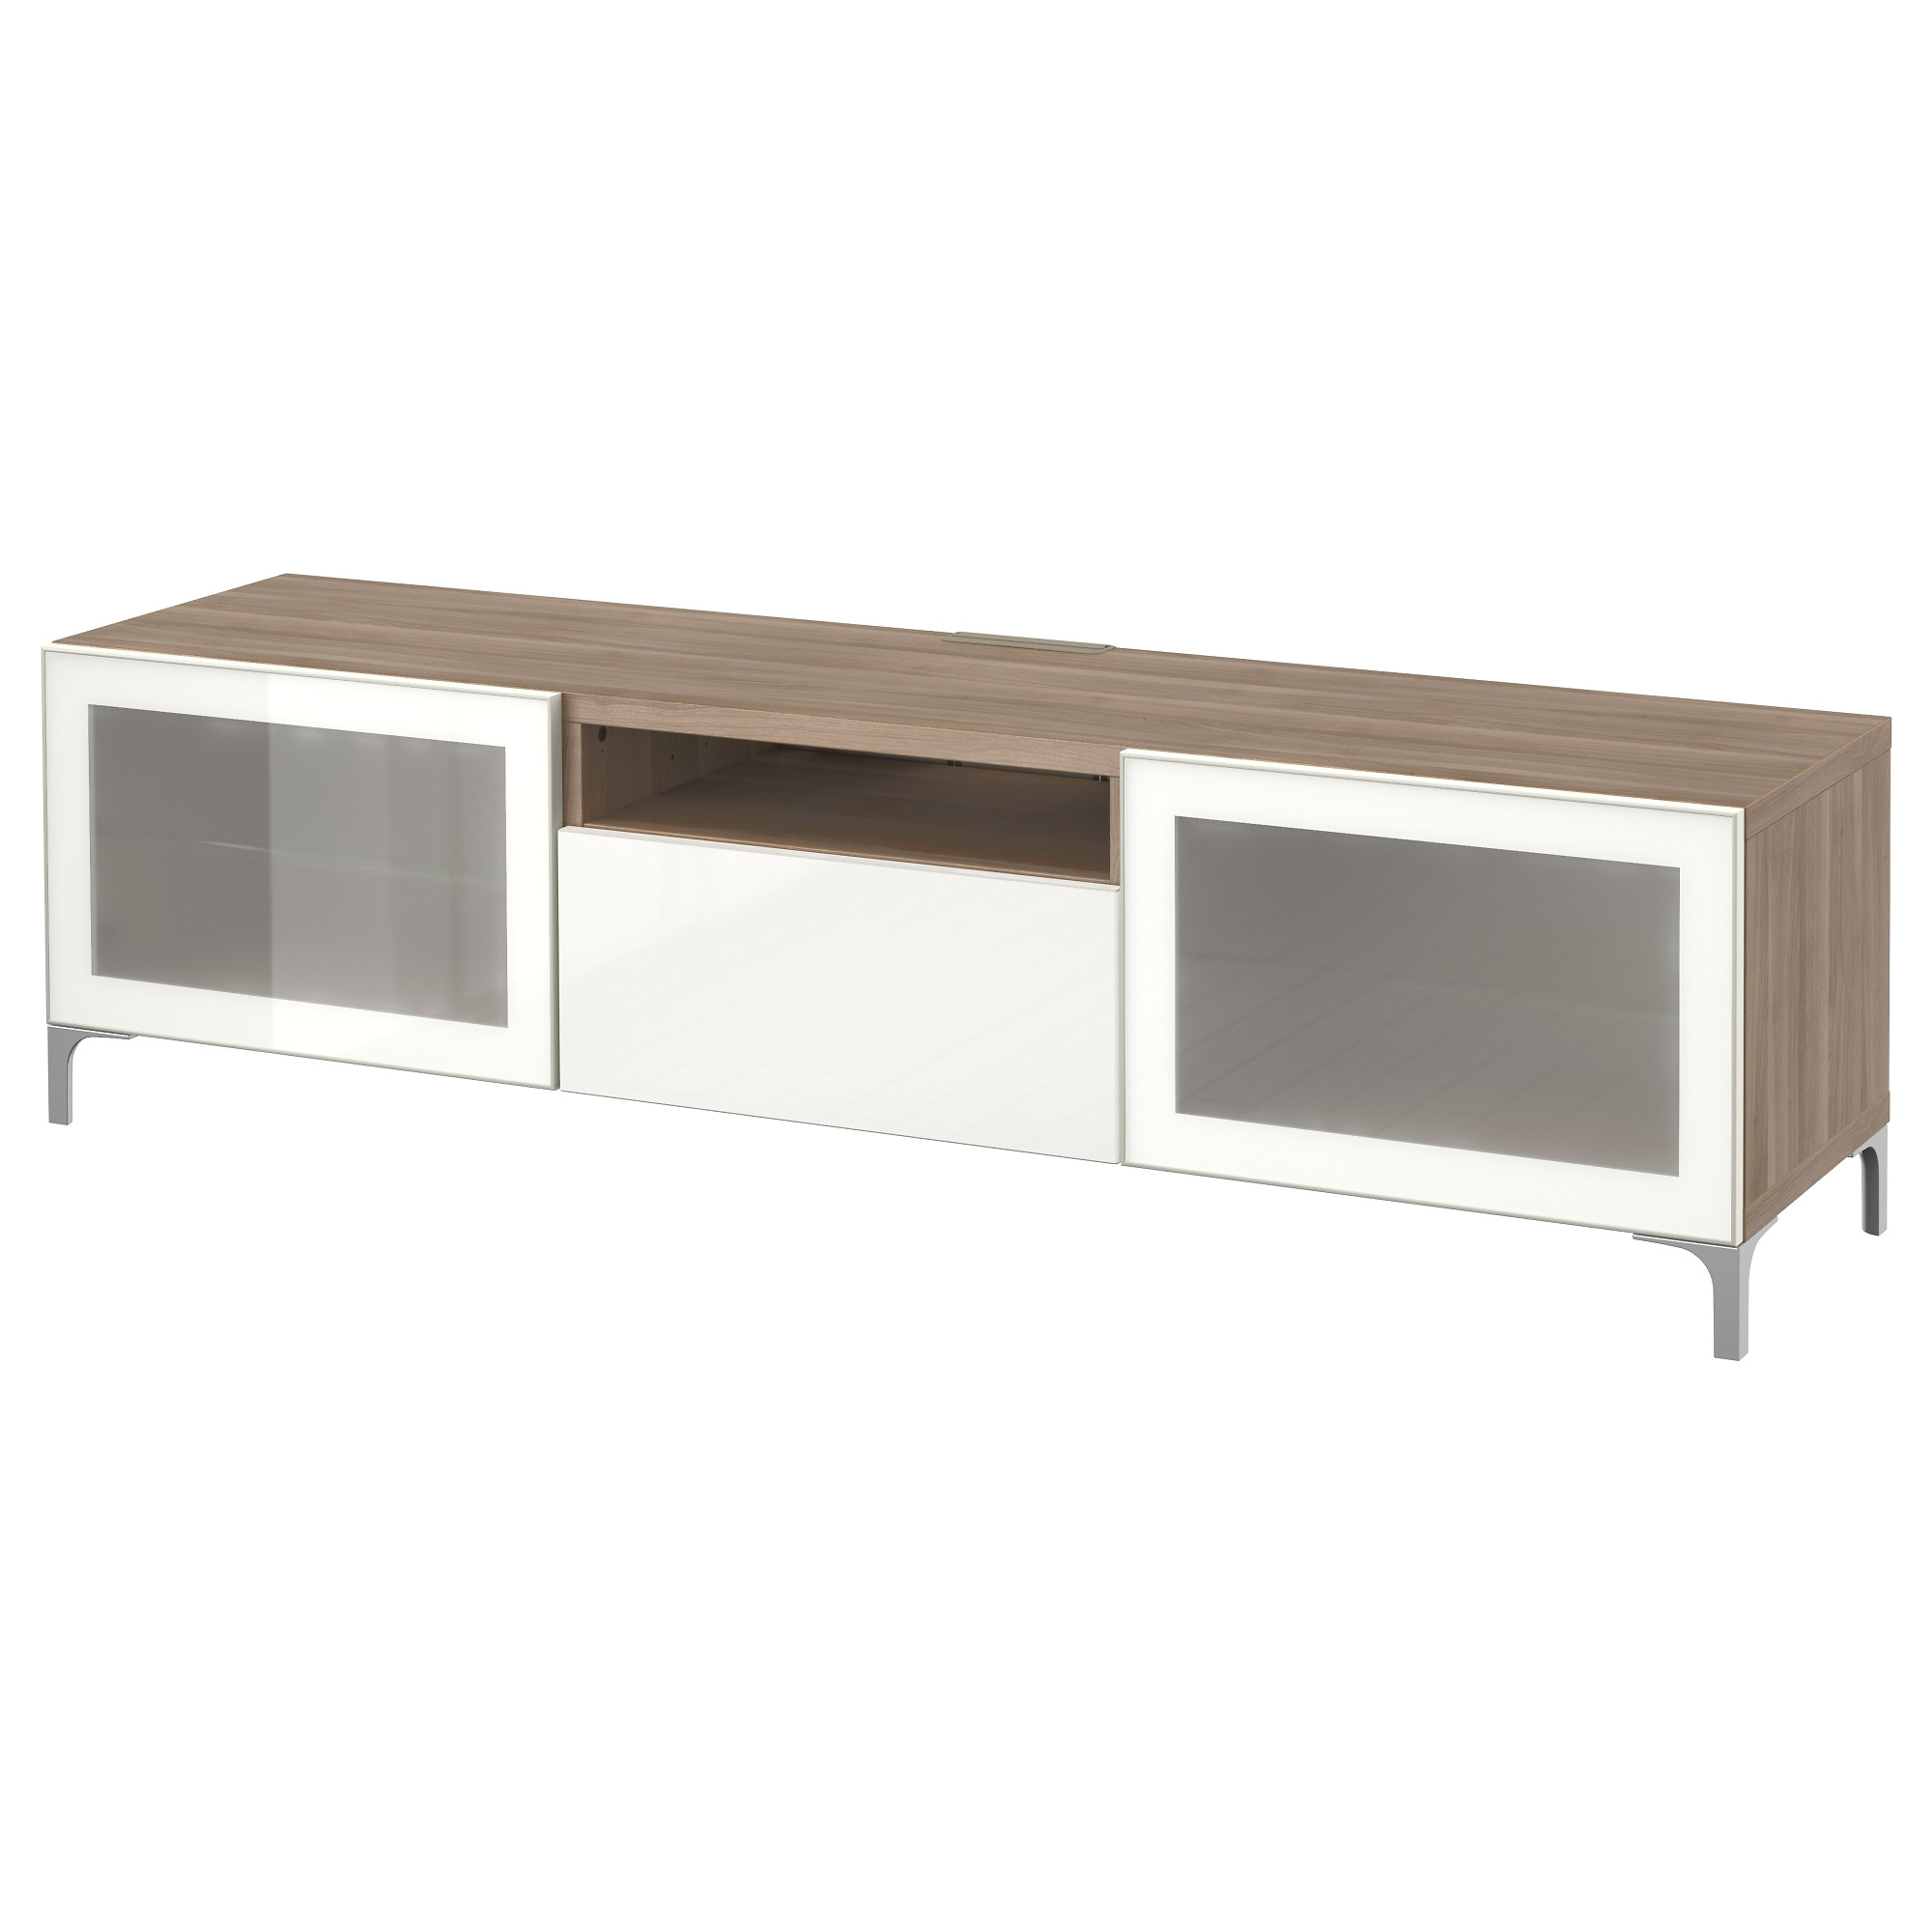 BEST… TV unit Lappviken Sindvik white clear glass drawer runner